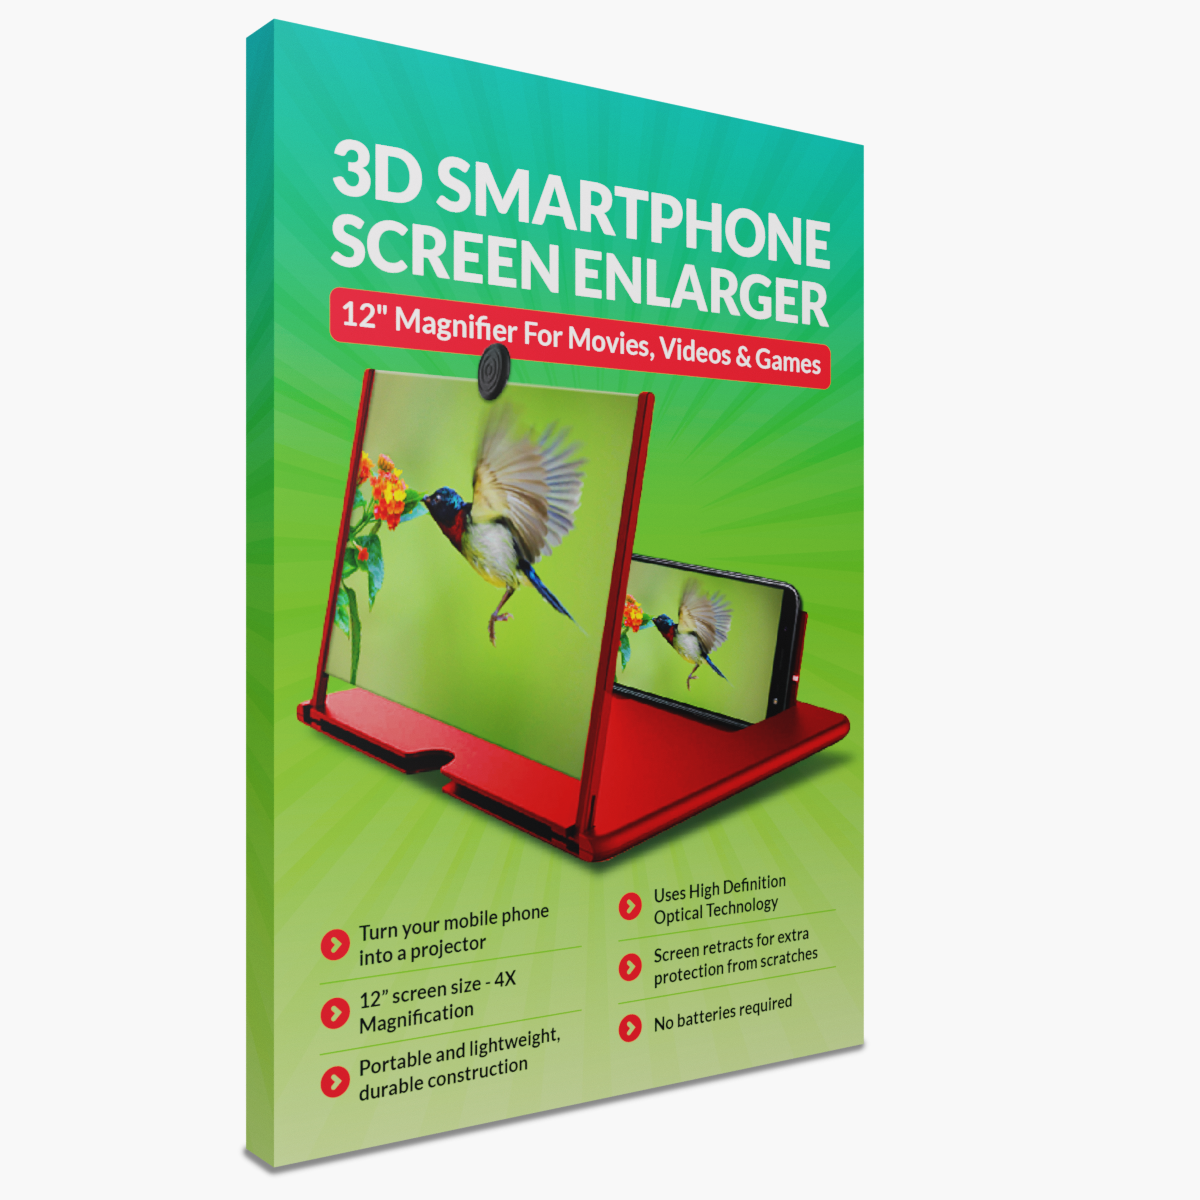 Showcase 3D Smartphone Screen Enlarger | As Seen on Instagram